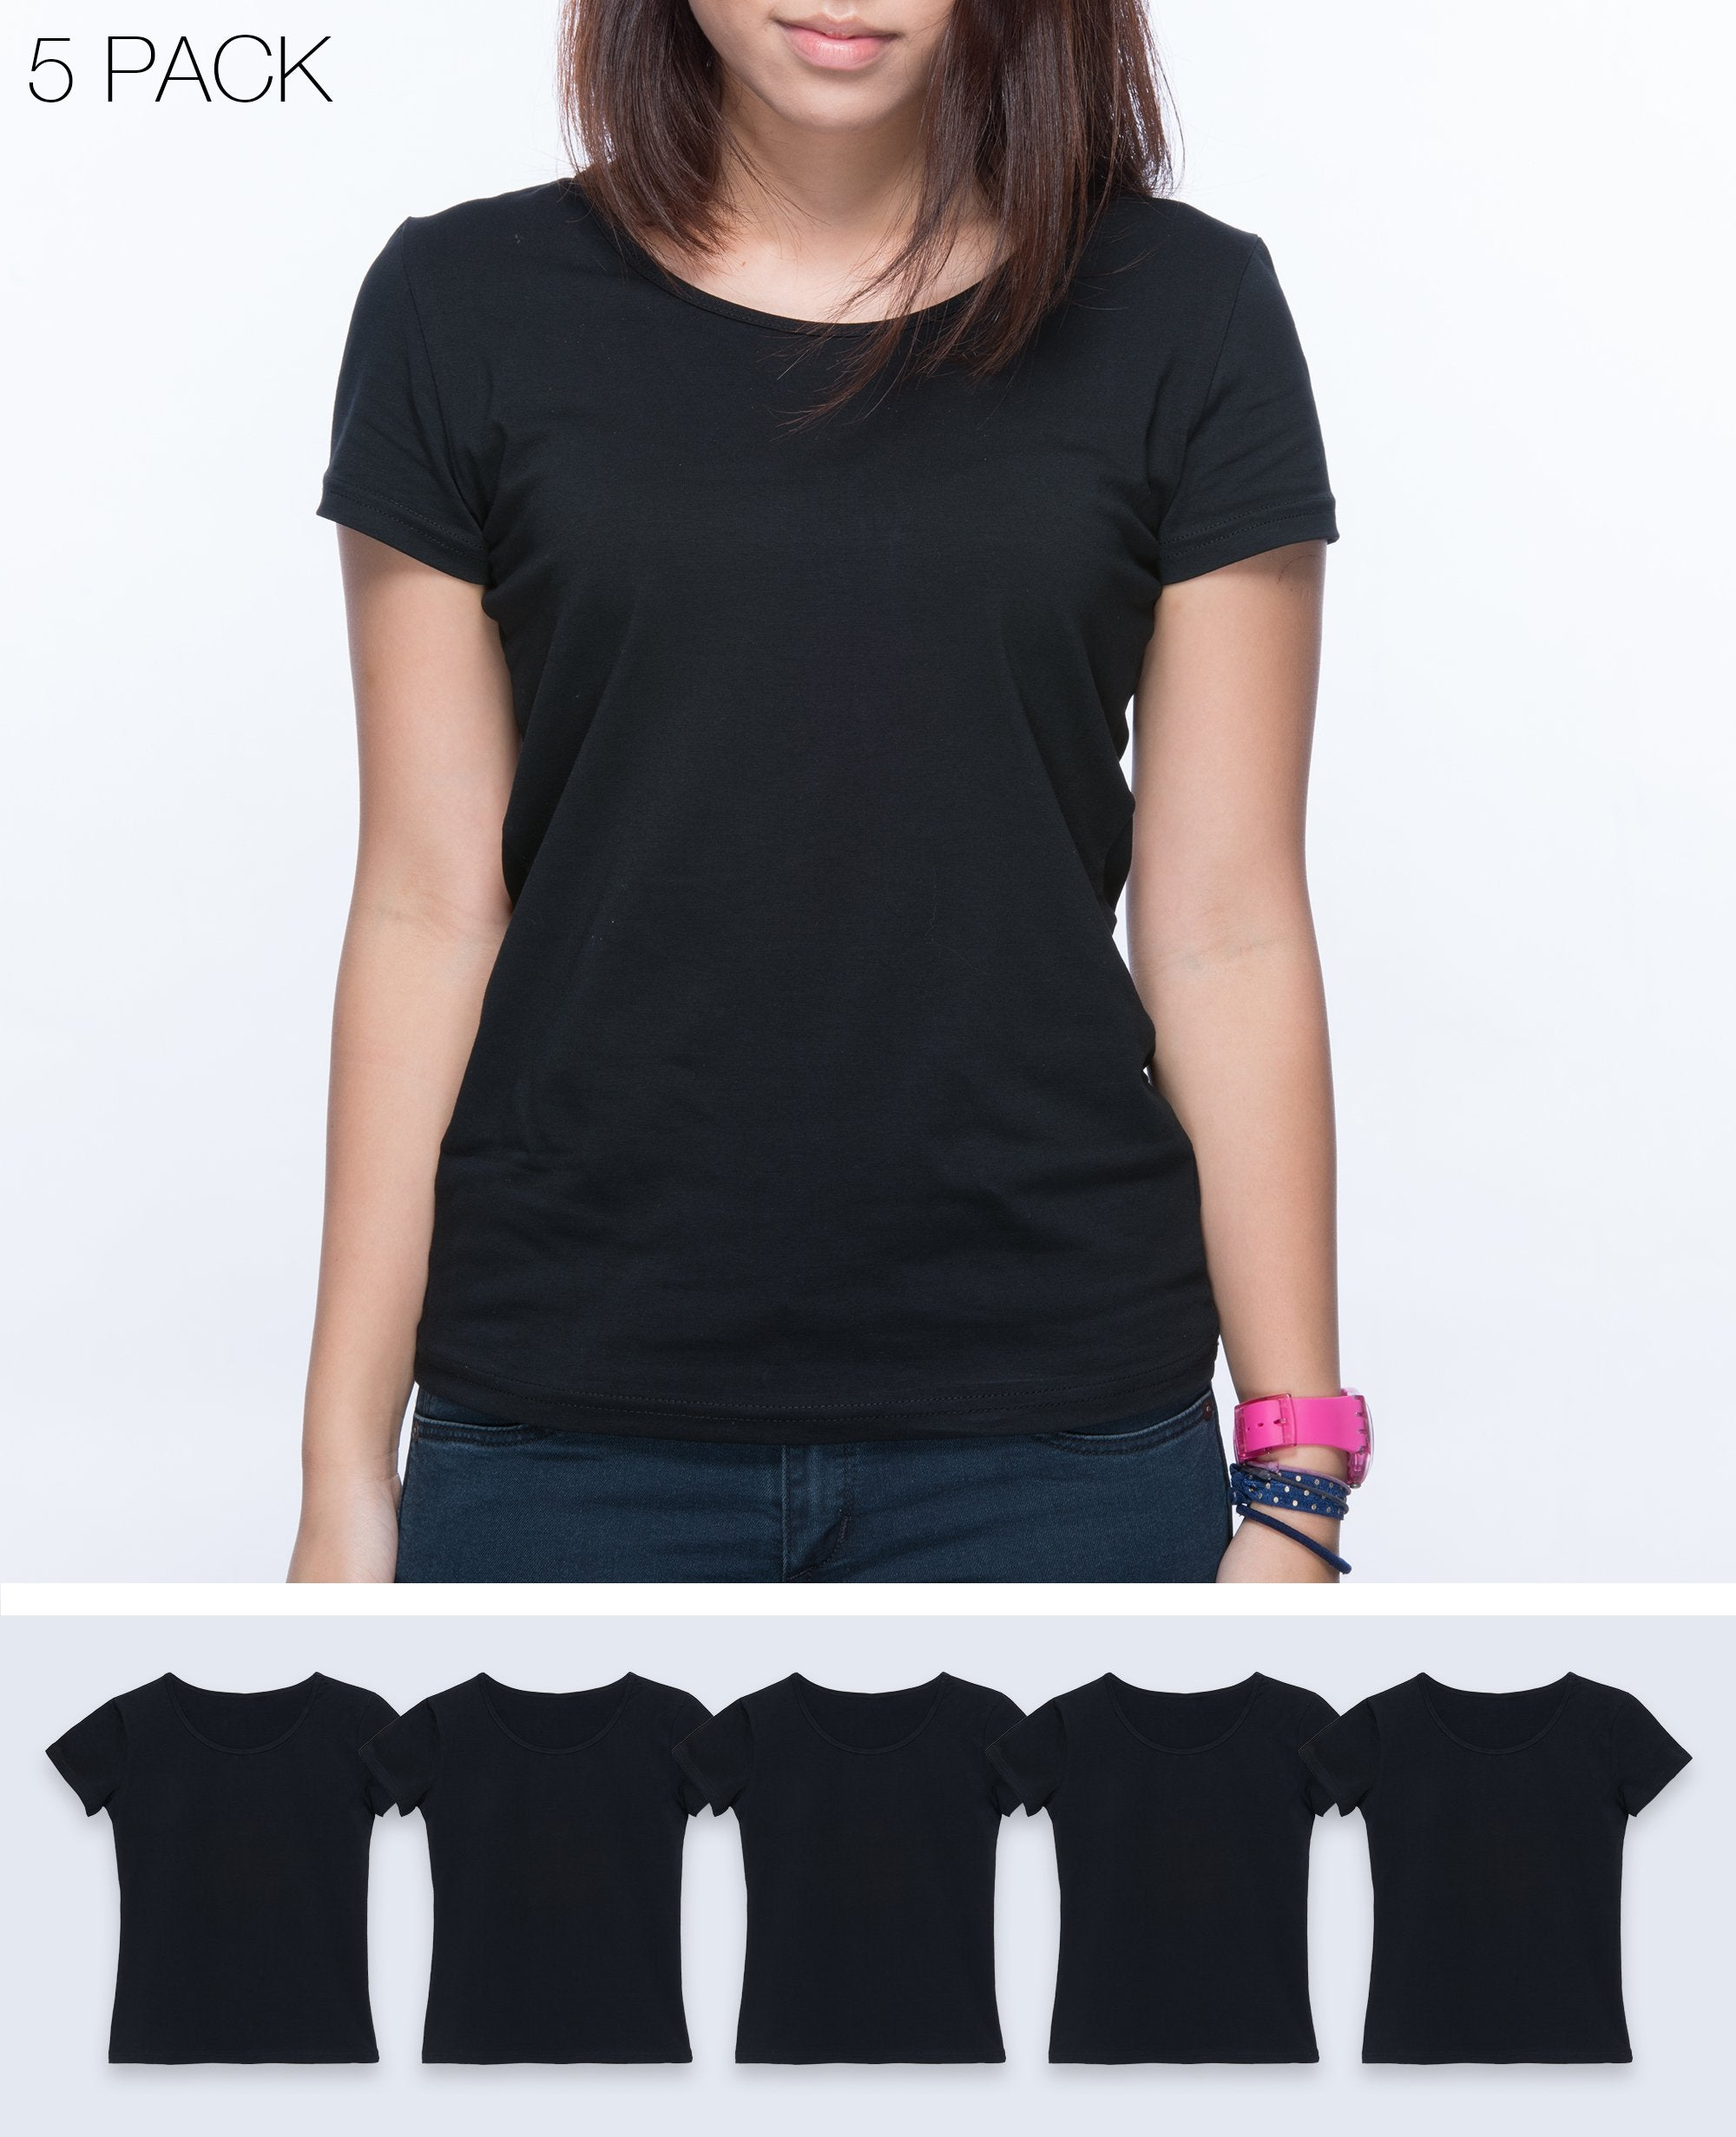 Slim fit T-shirt Women in Black 5 pack - T-Shirts - BRANMA - BRANMA